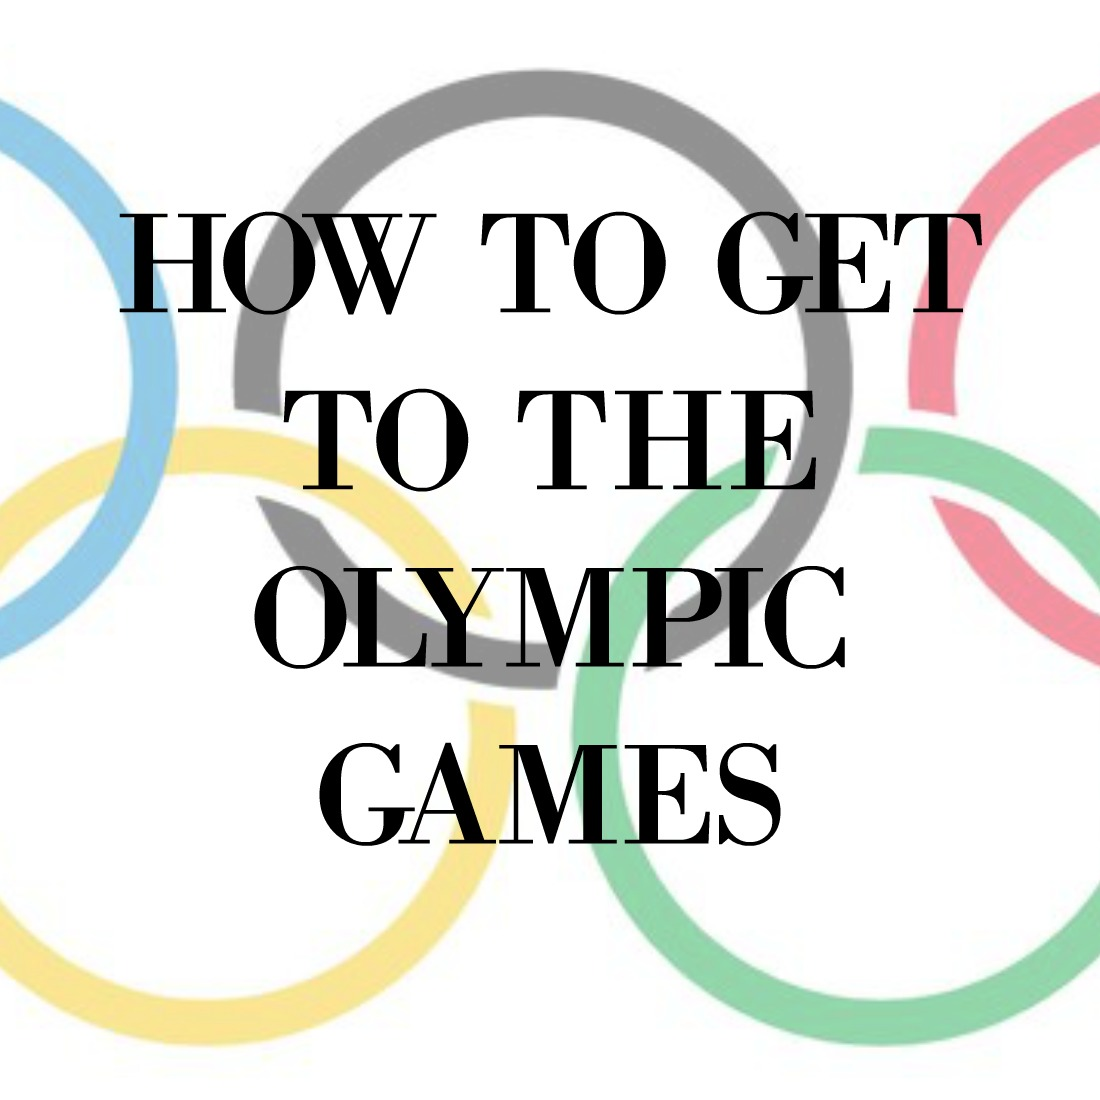 How to get to the Olympic 70